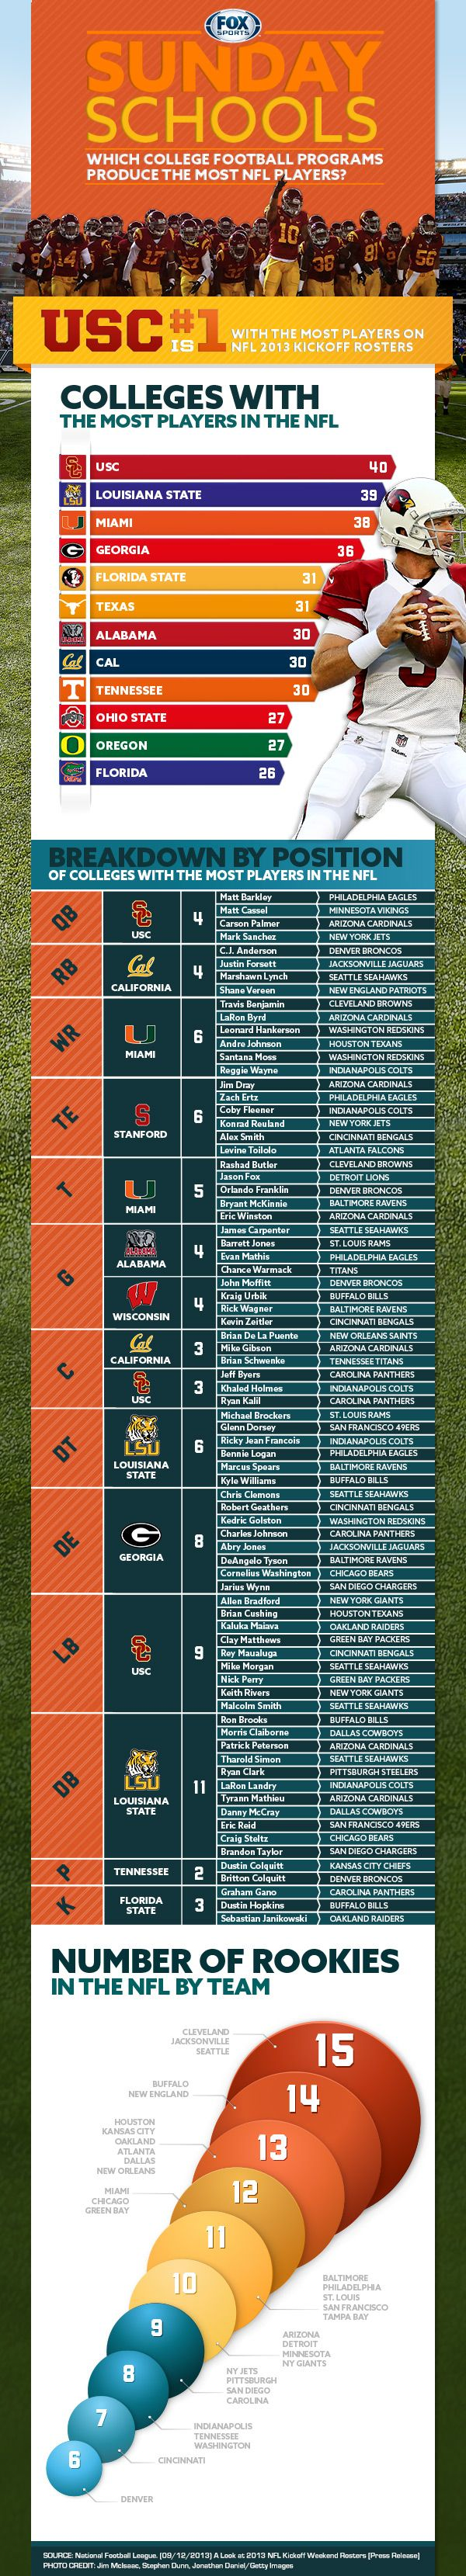 Which college produces the most NFL talent?